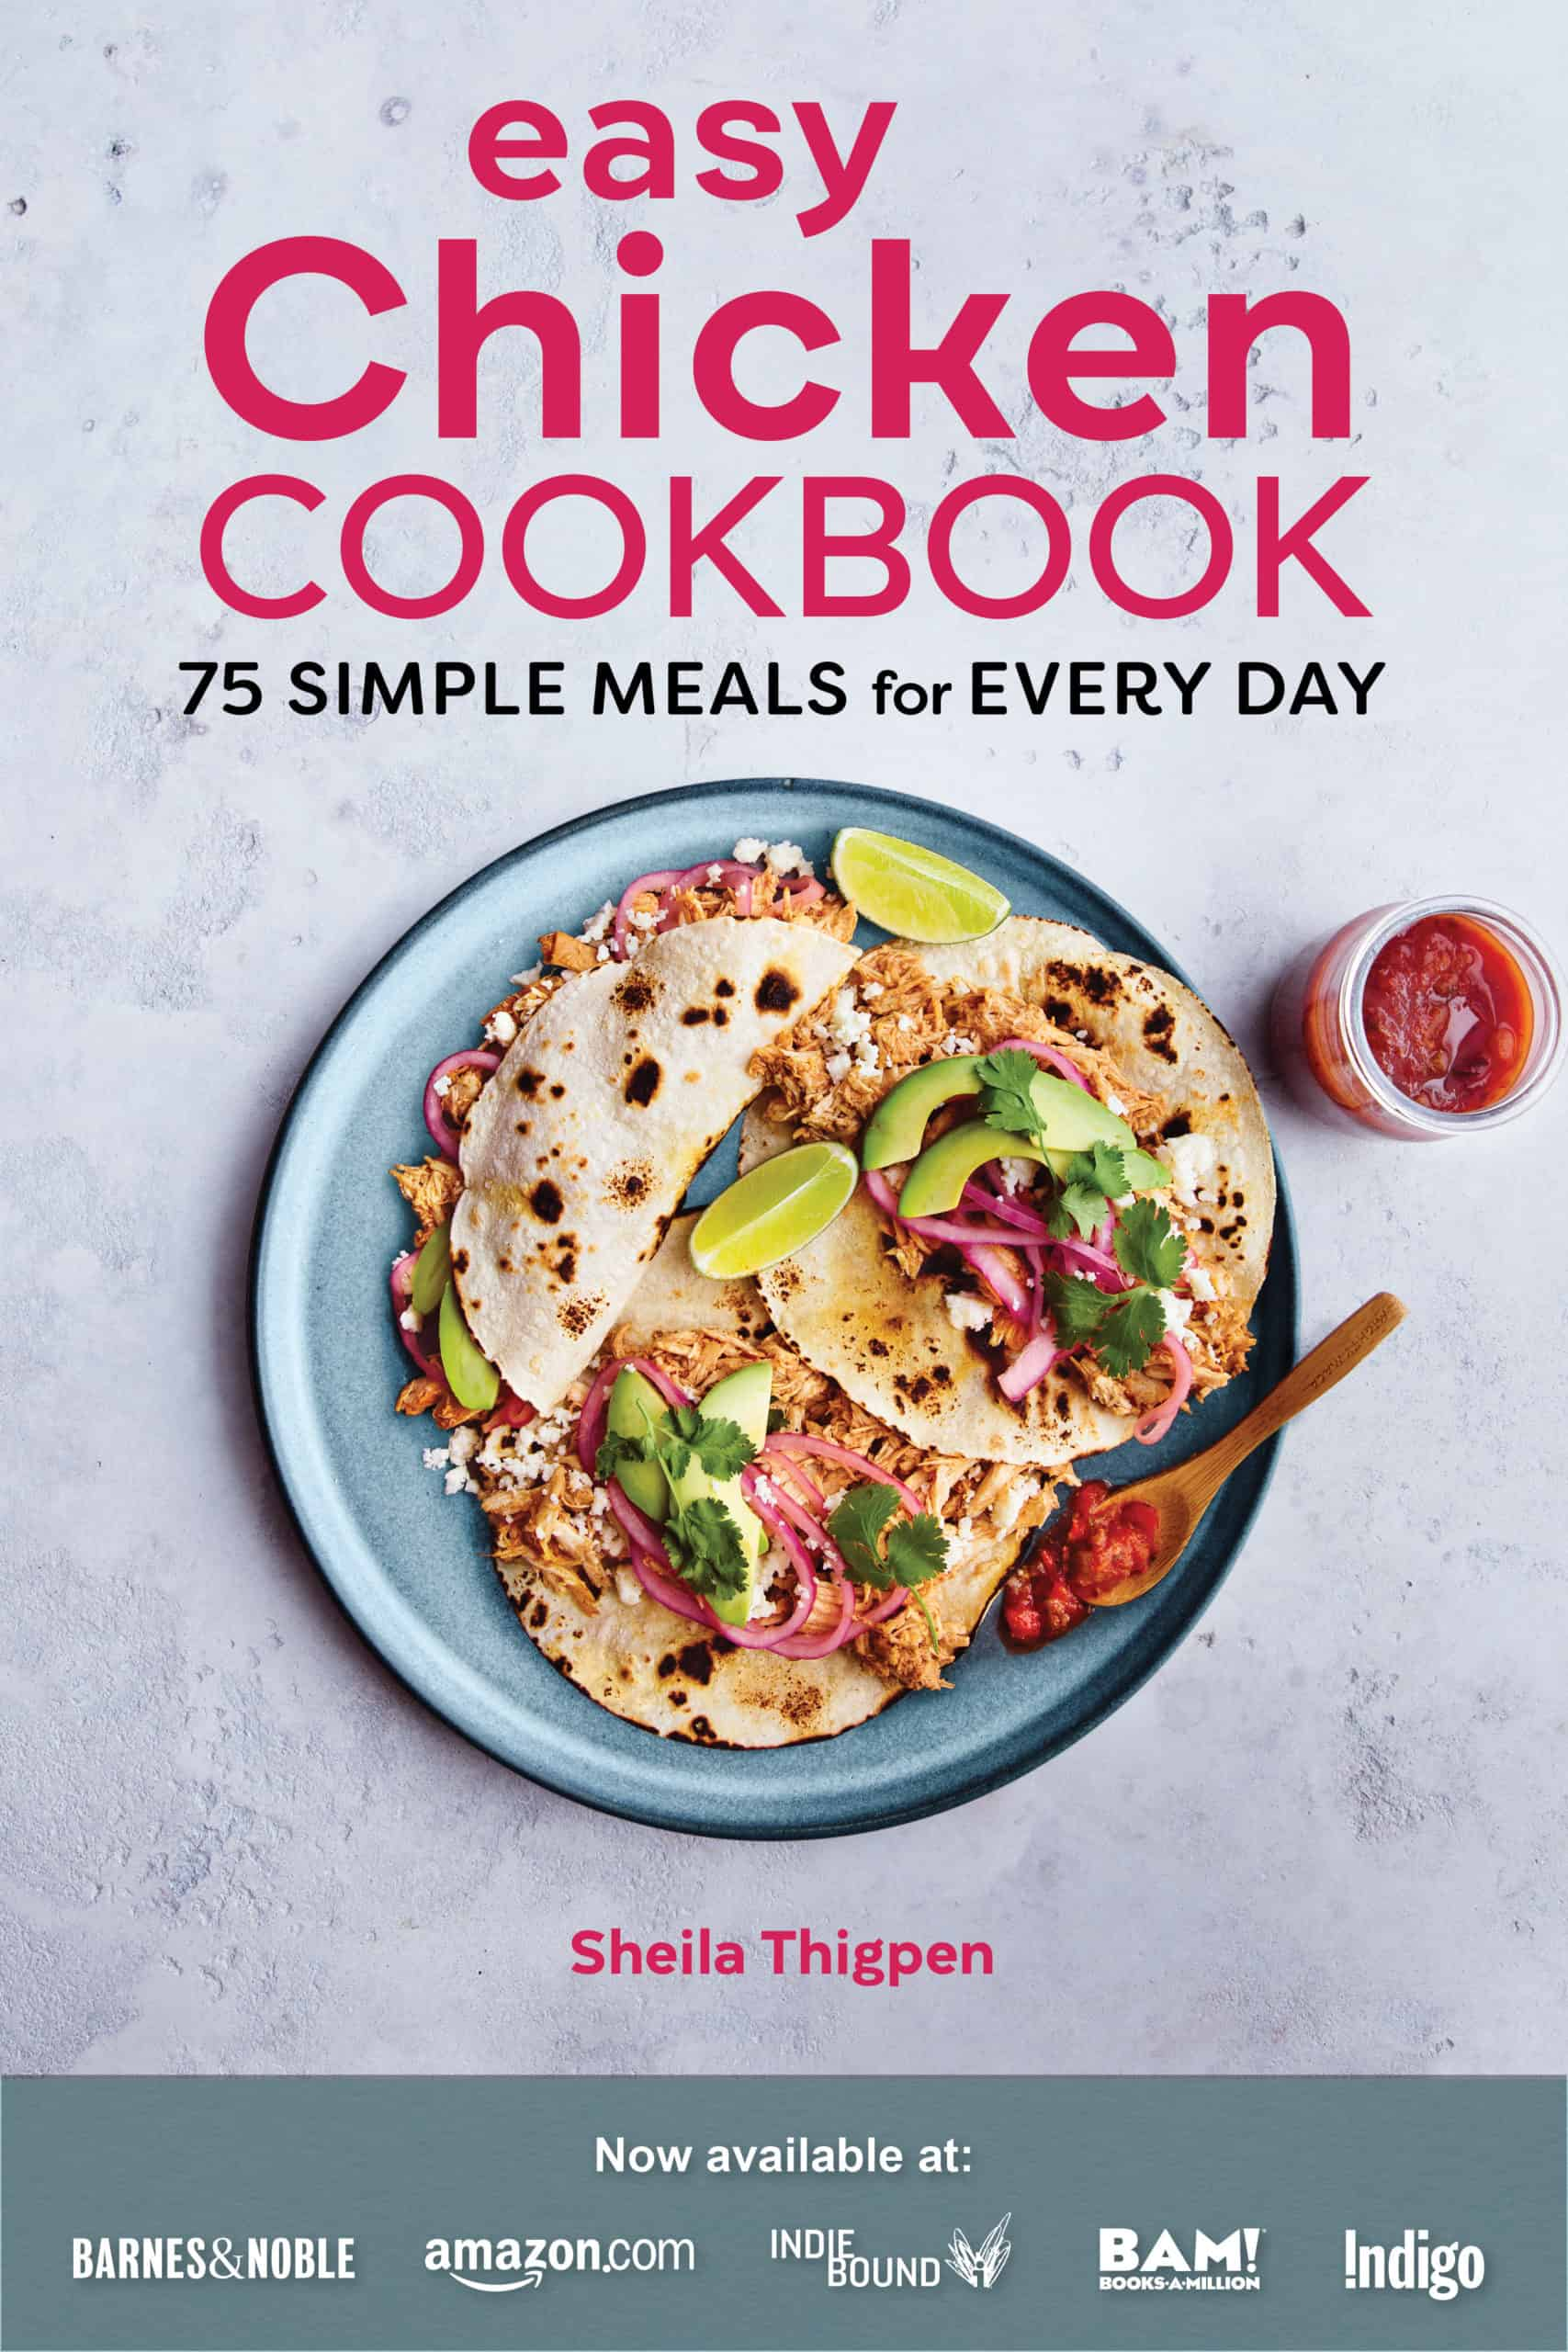 Winner, winner, chicken dinners! When it comes to making flavorful, weeknight-friendly meals, there's no ingredient as deliciously versatile as chicken. The Easy Chicken Cookbook is packed with dozens of simple recipes with minimal prep!